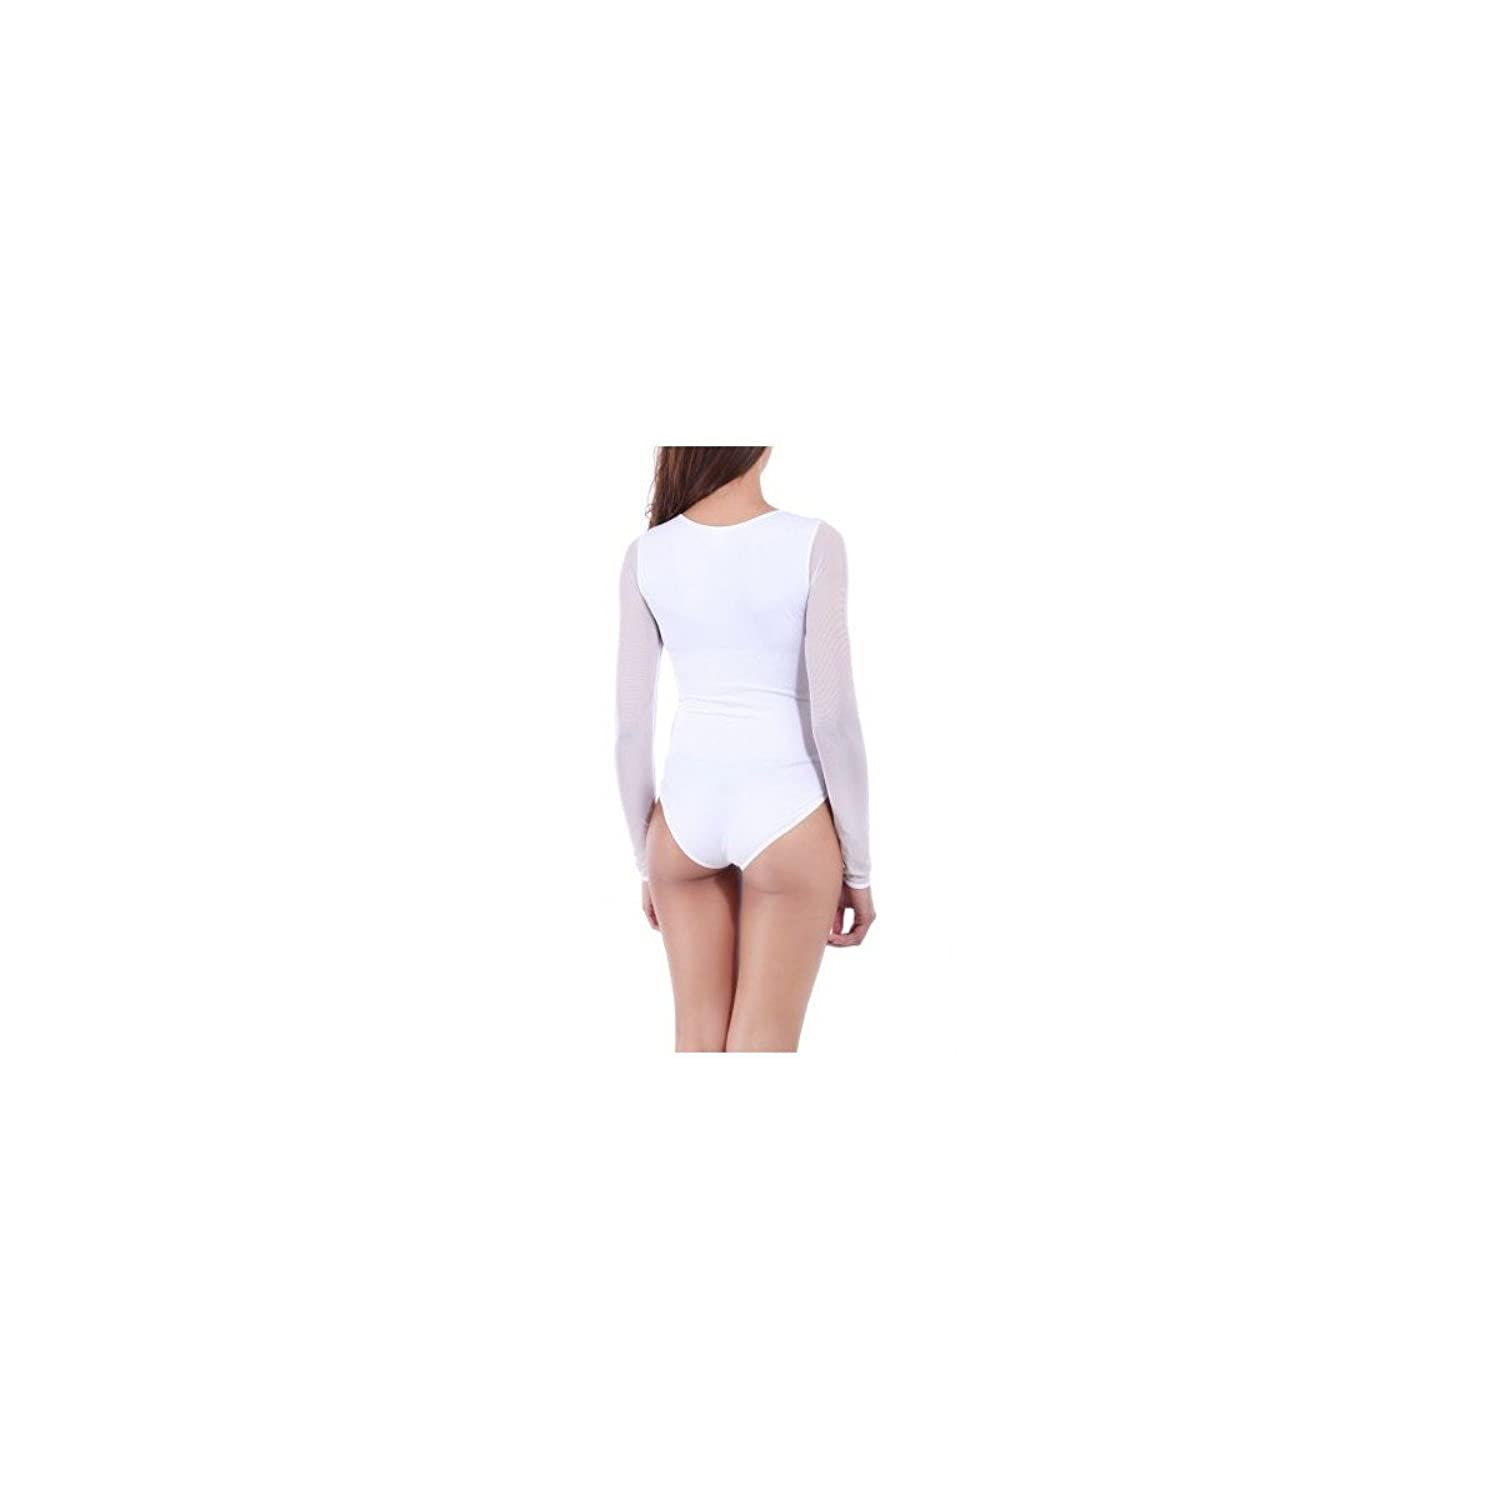 La Modeuse?-?Smooth Effect Bustier Shapewear Bodysuit That Shapes Under Clothing